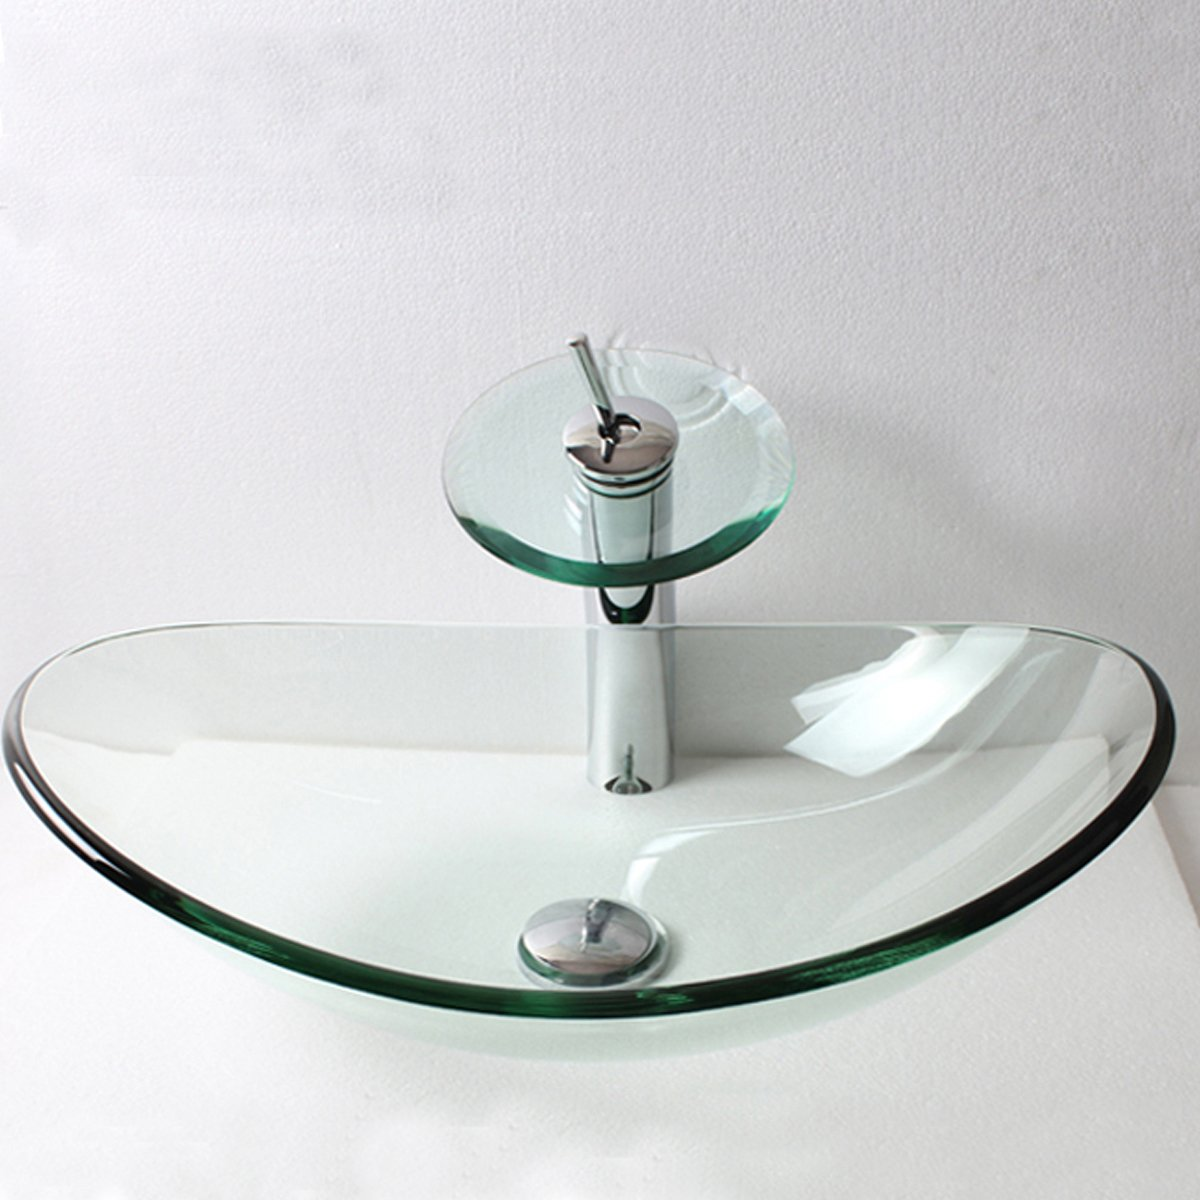 Walcut Transparent Glass Vessel Sink With Faucet And Pop Up Drain Set (Oval Sink With Pull Faucet) free shipping